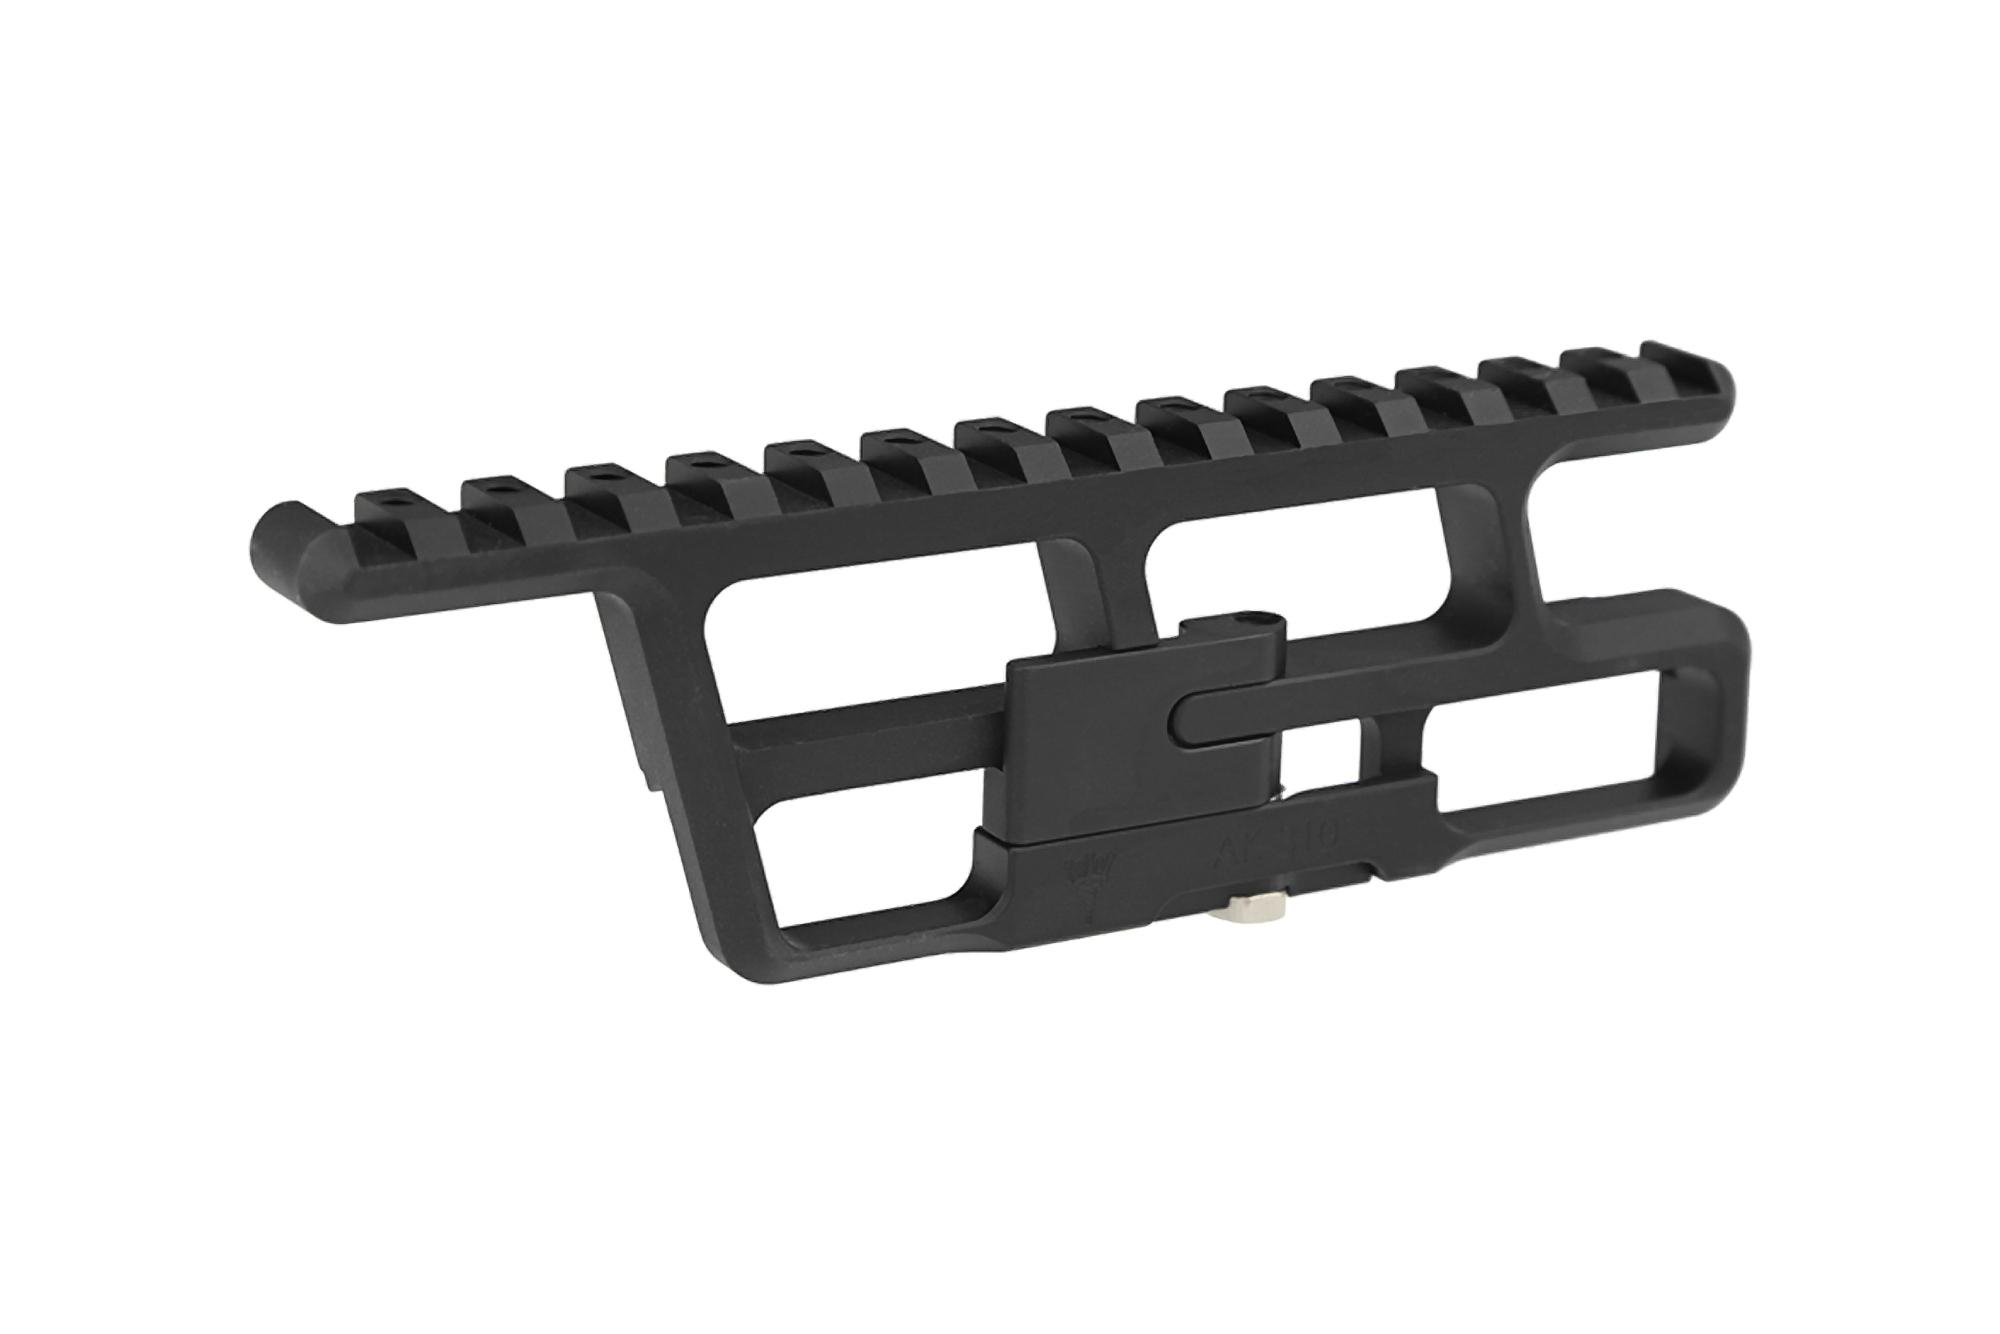 This AK-47 scope mount is designed to attach to a side mount on your Yugo receiver